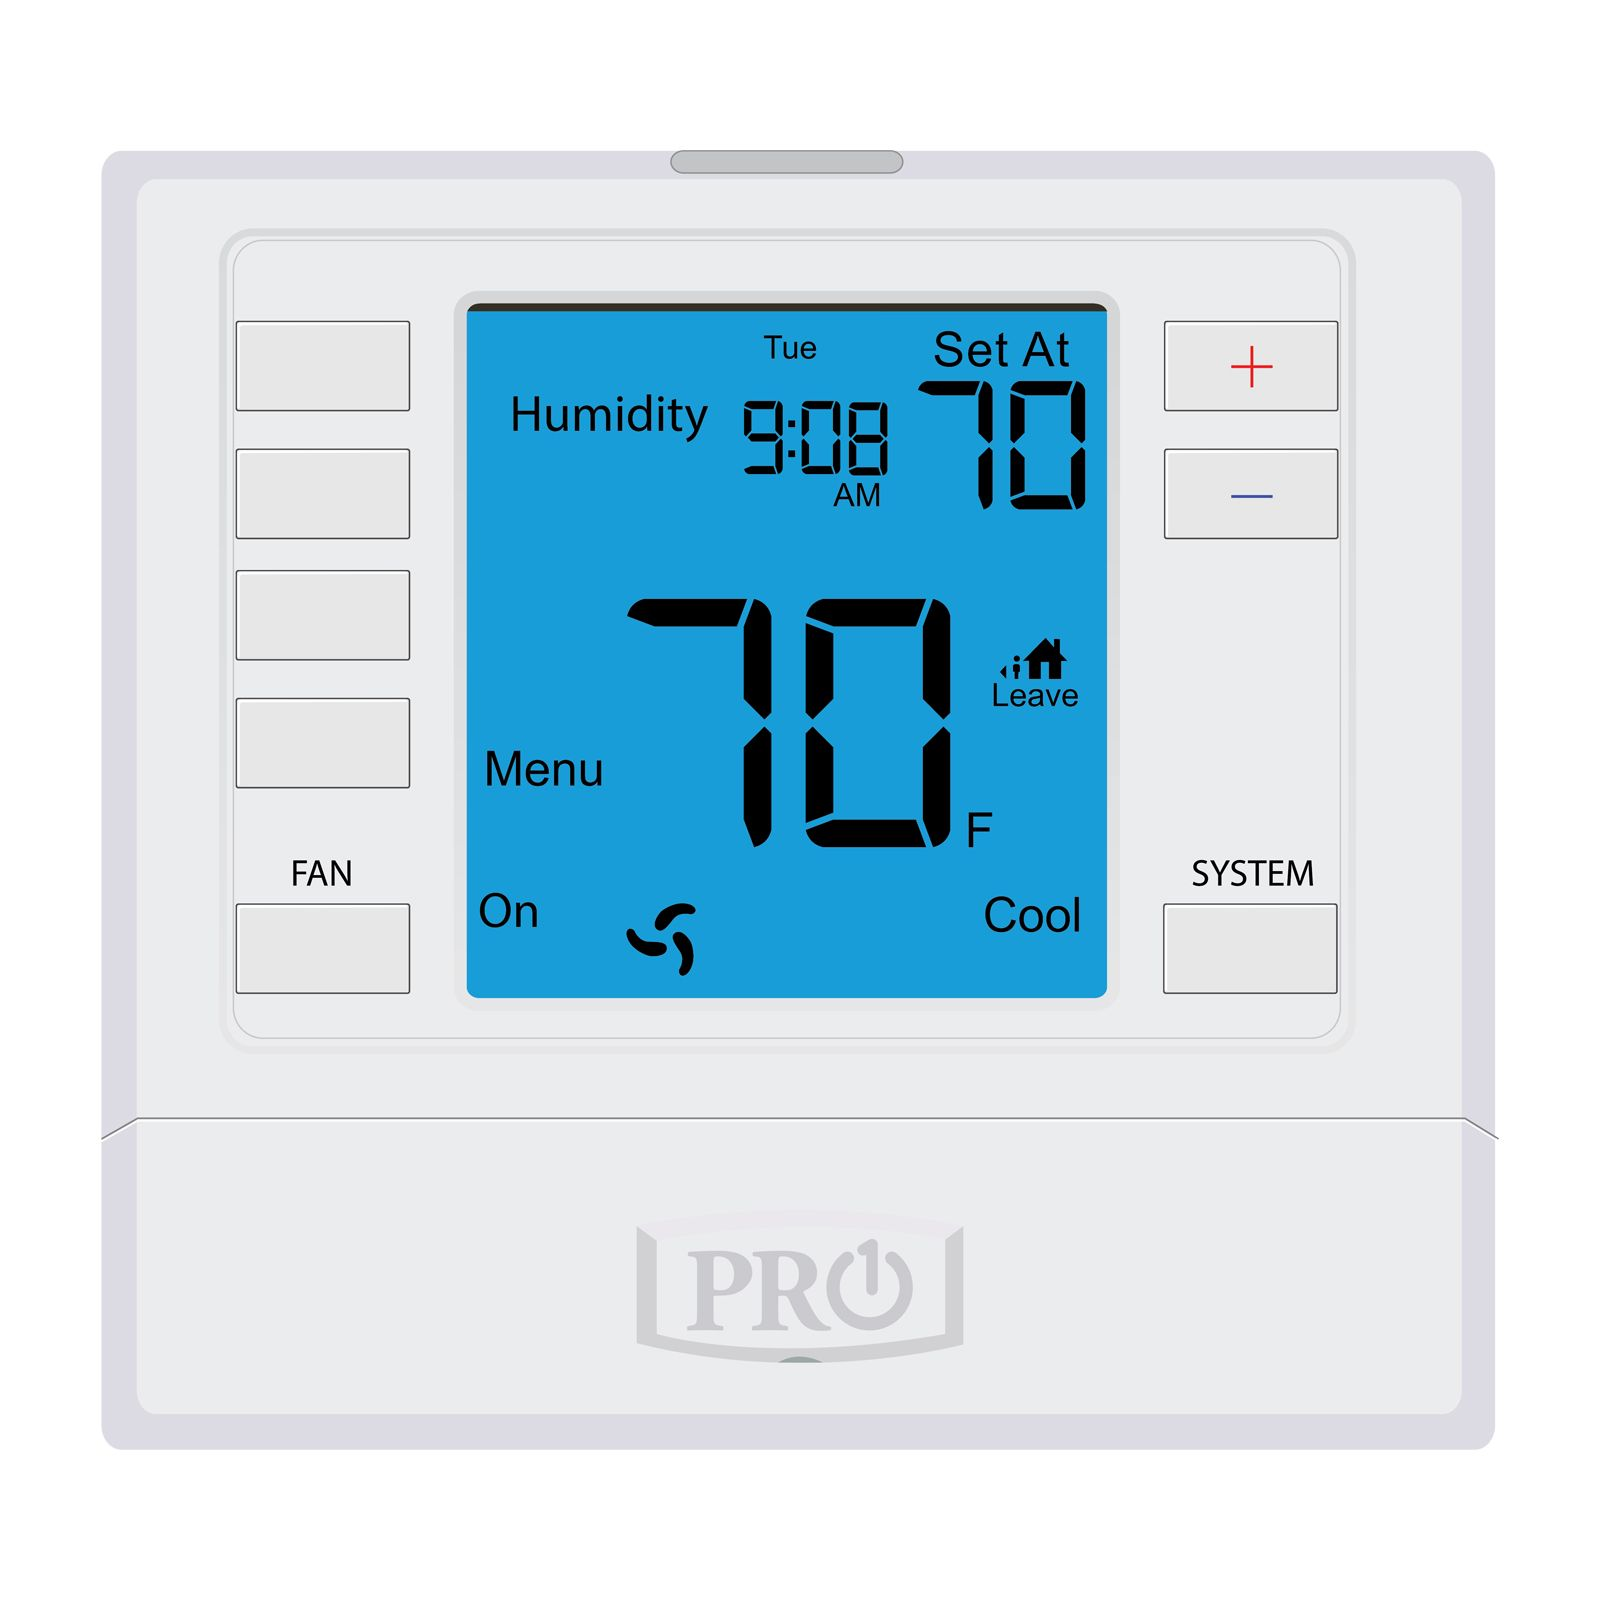 Pro1 T755S - 5+1+1 Or Non-Programmable Thermostat, 3H/2C With 6 Square Inch Display. Sensors Not Included.